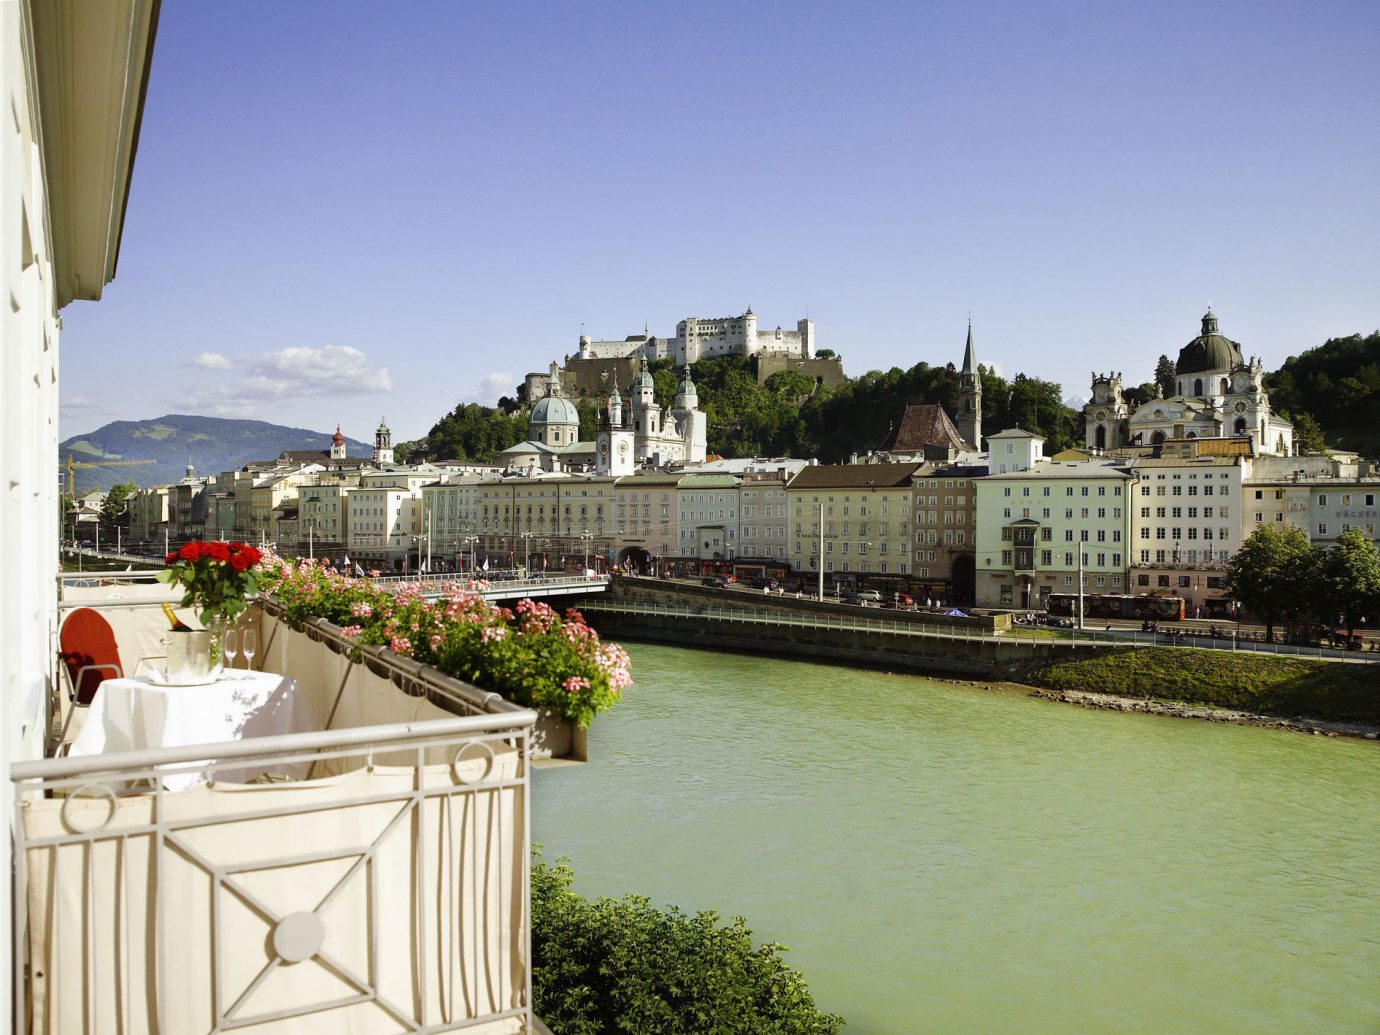 europe Hotels Prague sky outdoor water Town River waterway Canal vacation tourism flower Resort